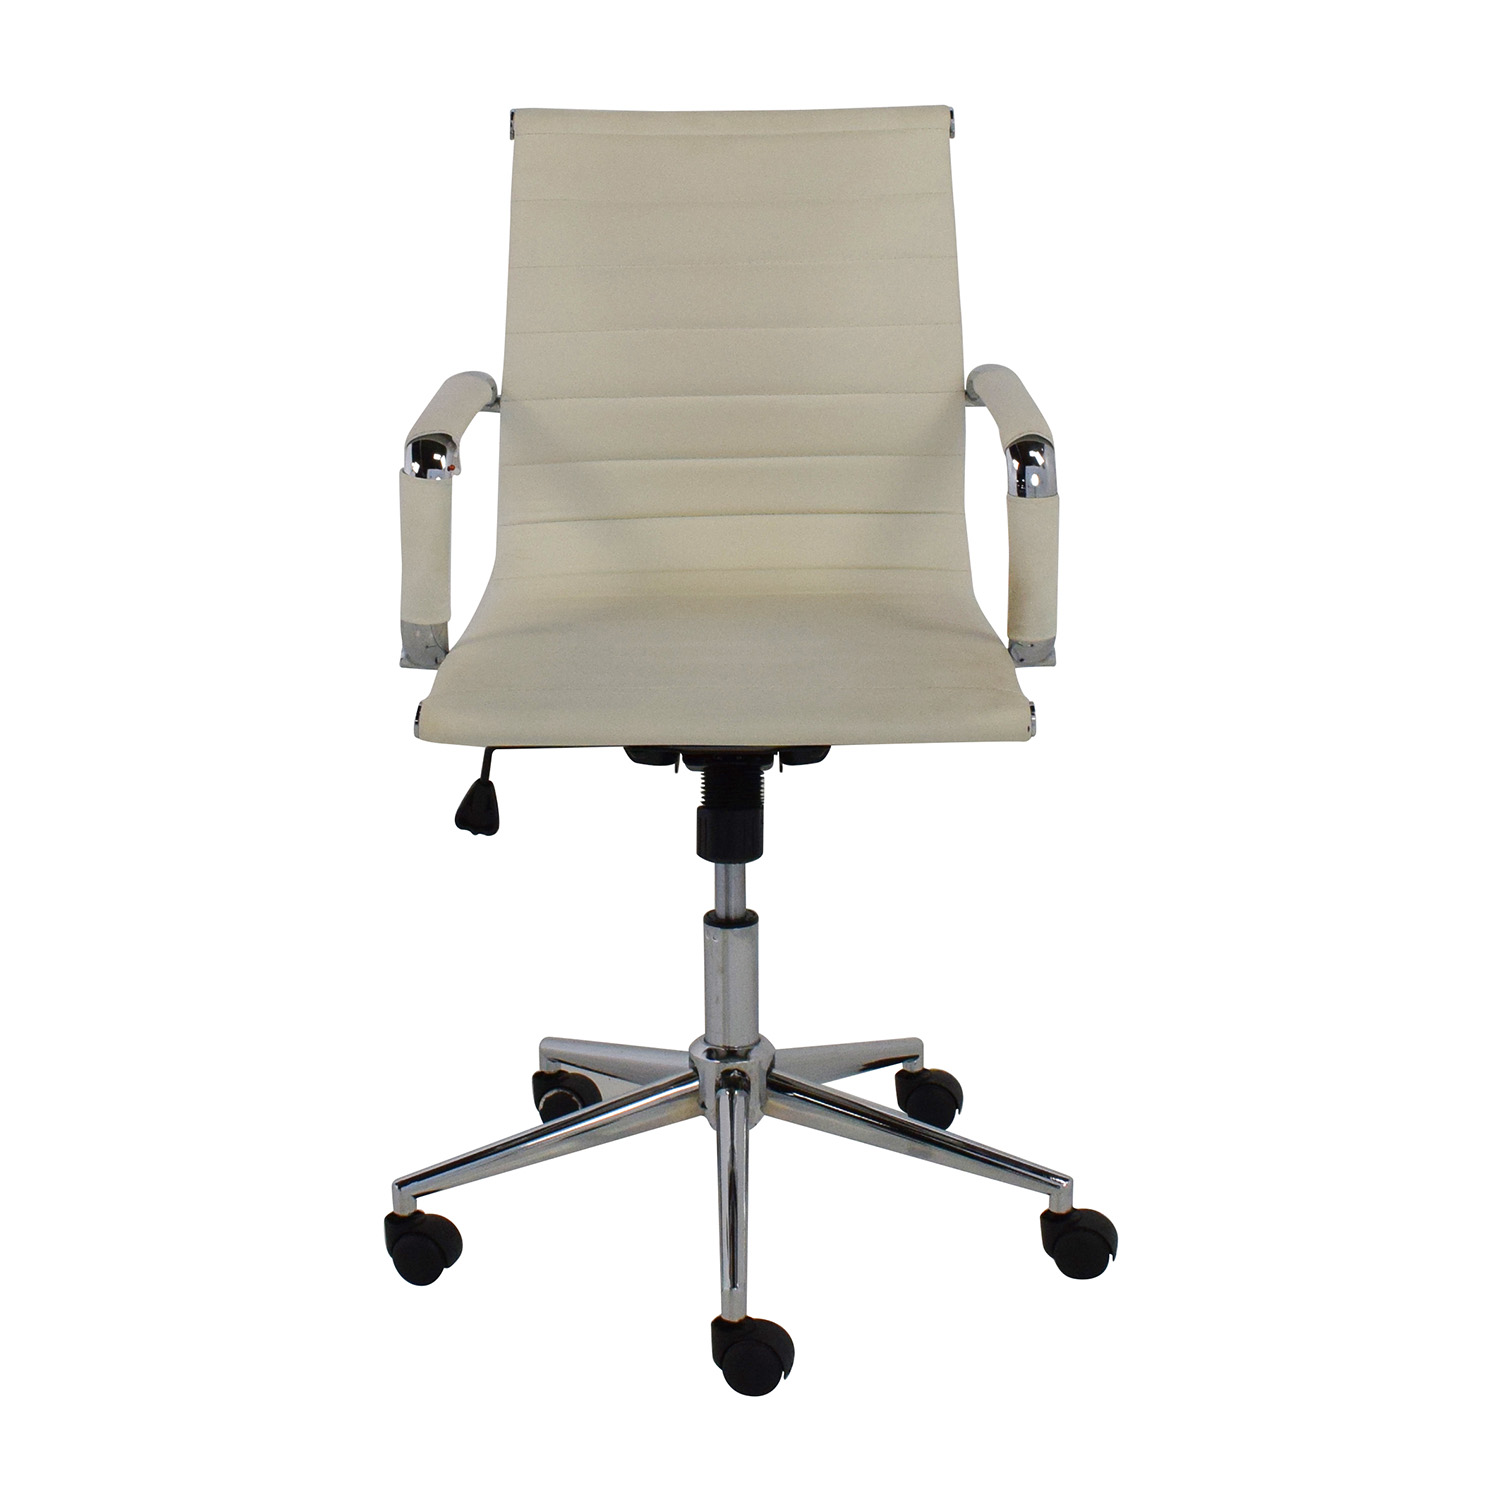 2xhome 2Xhome Modern Mid Back White Faux Leather Office Chair second hand